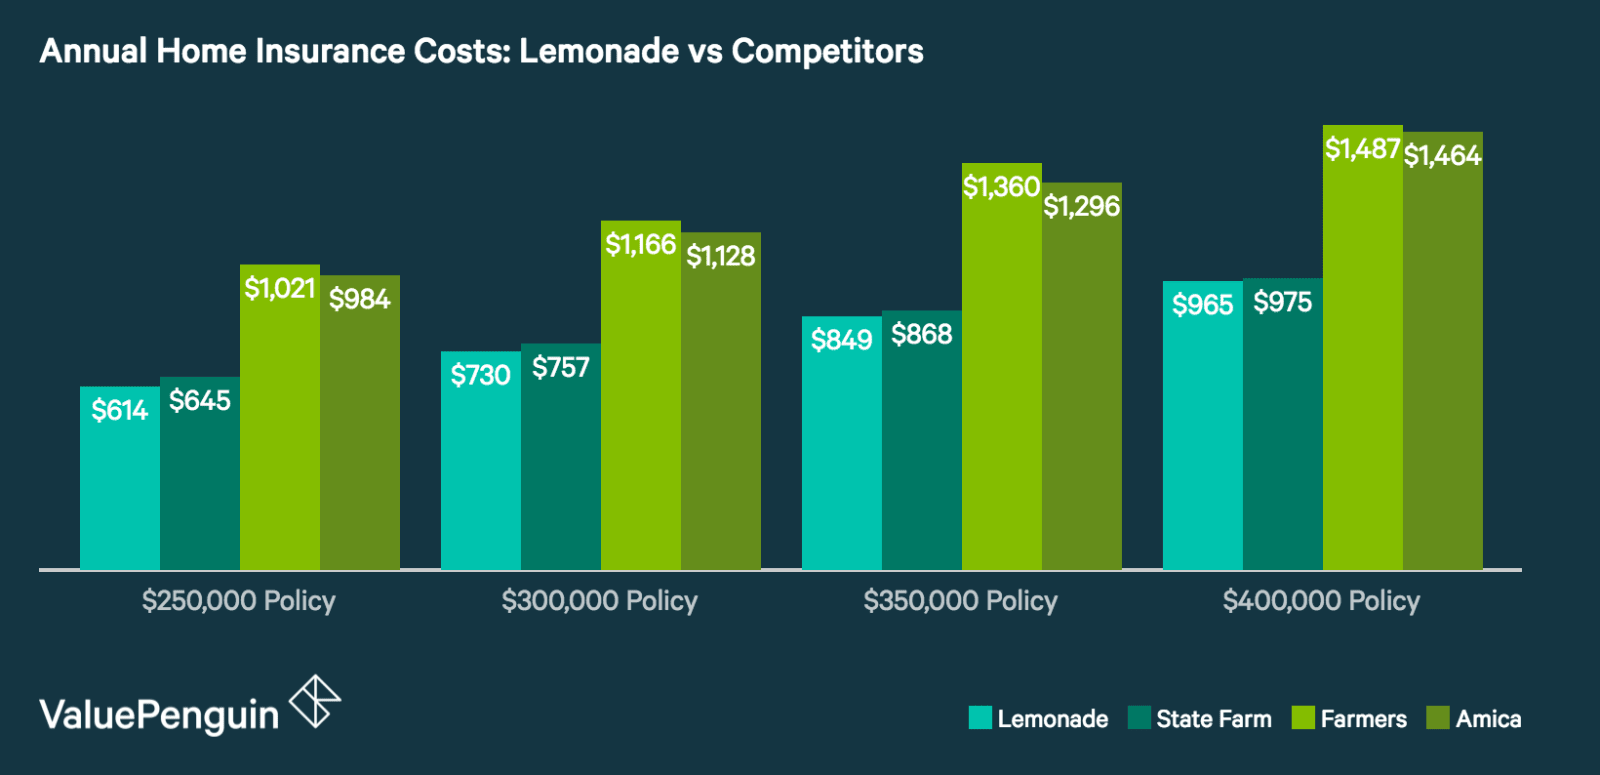 How Do Lemonade's Home Insurance Quotes Compare to Other Insurers?